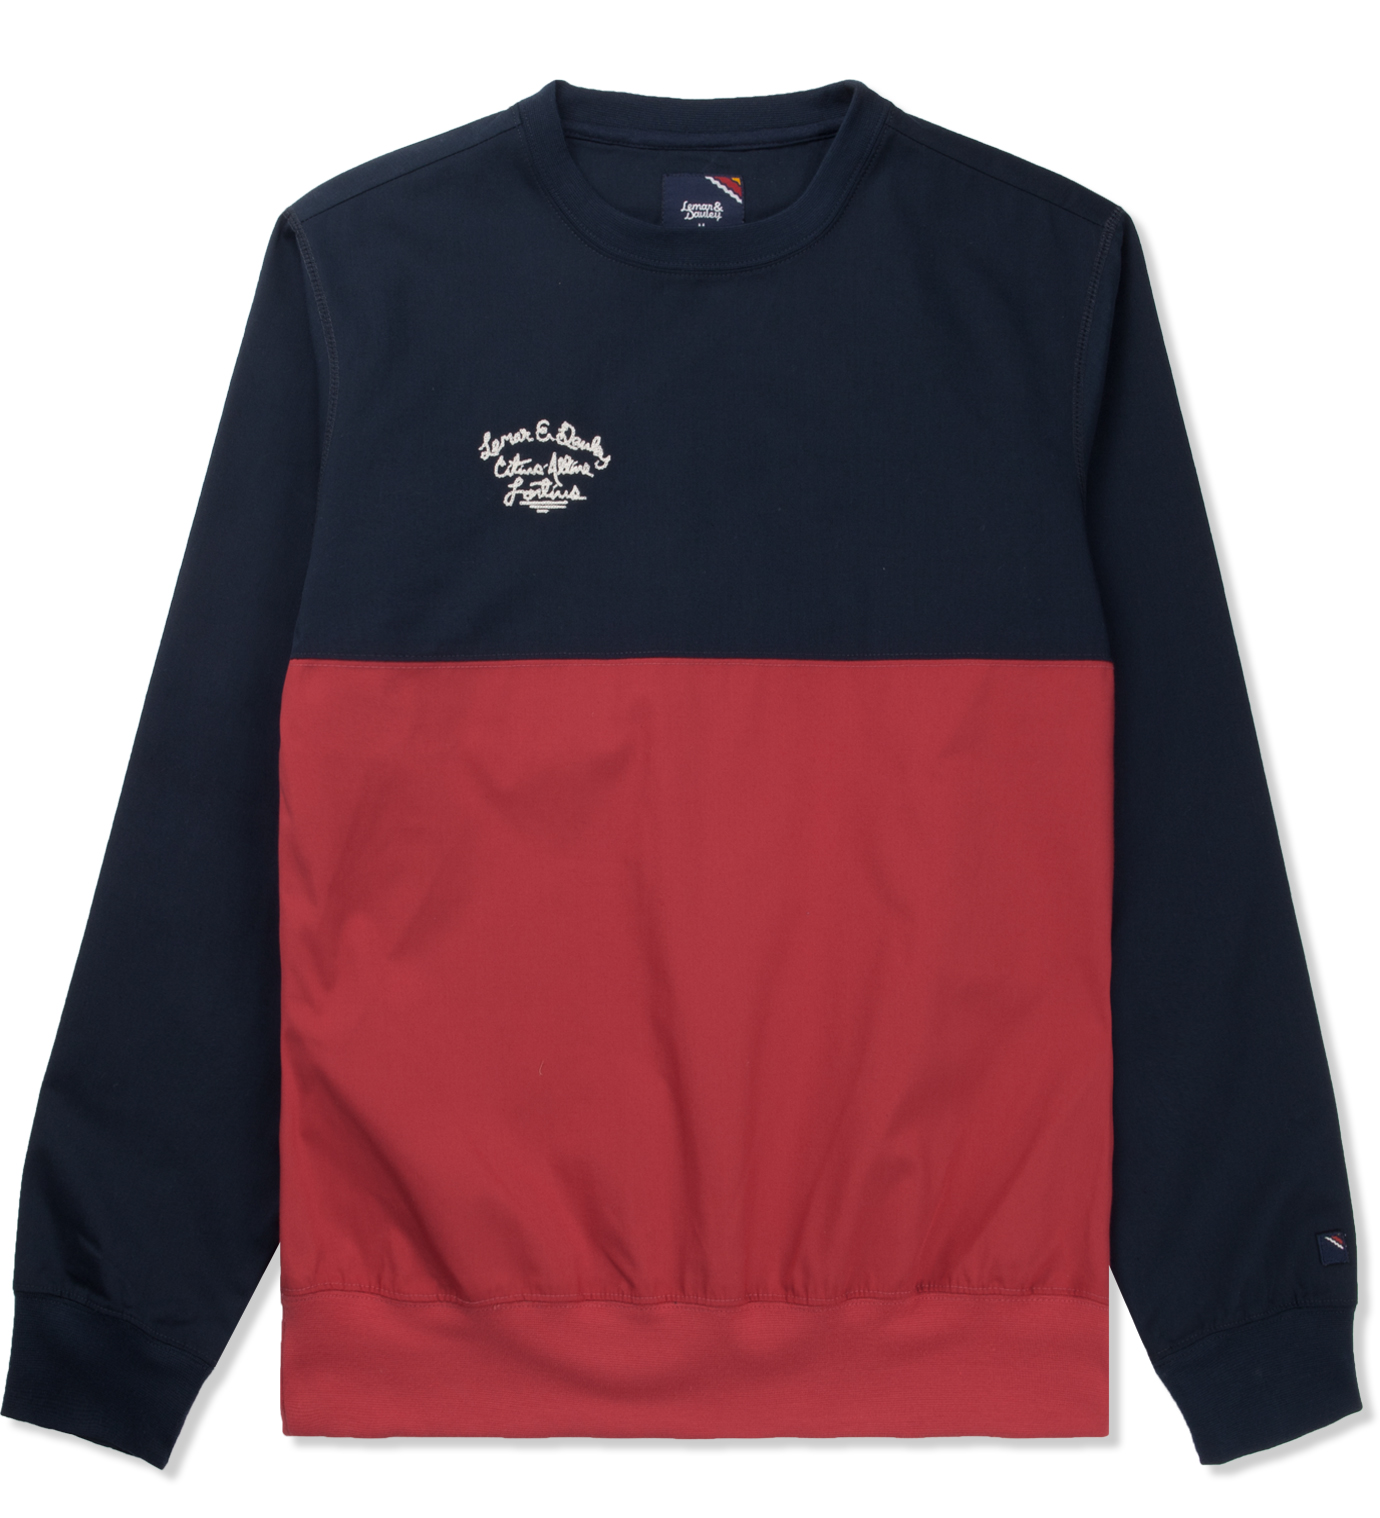 Lemar And Dauley Sweater 87